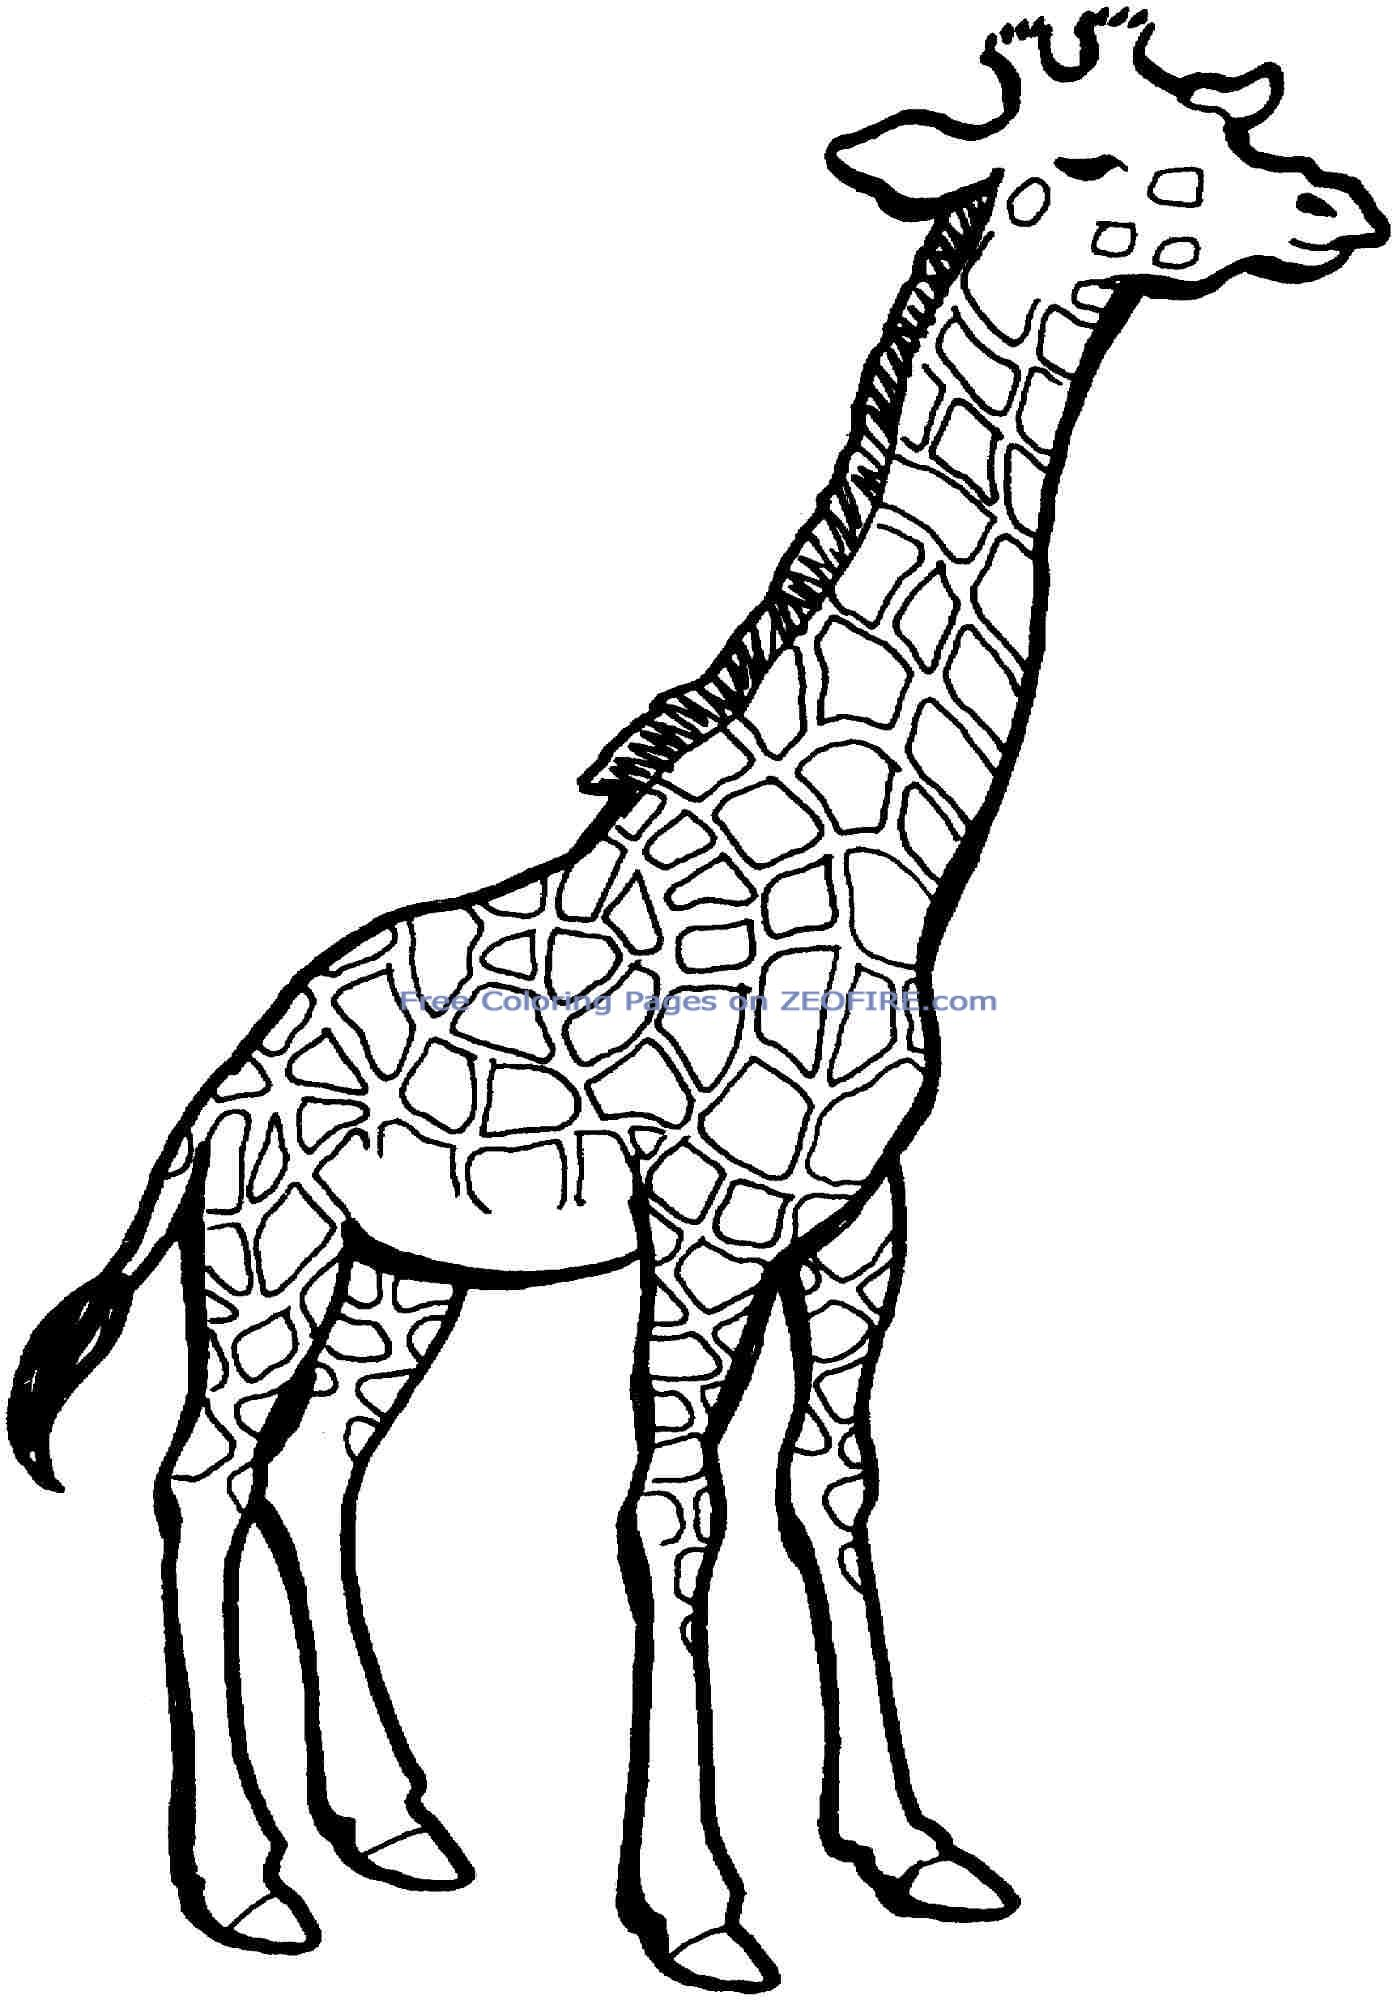 1397x2000 Best Giraffe Coloring Pages Free 2995 Printable